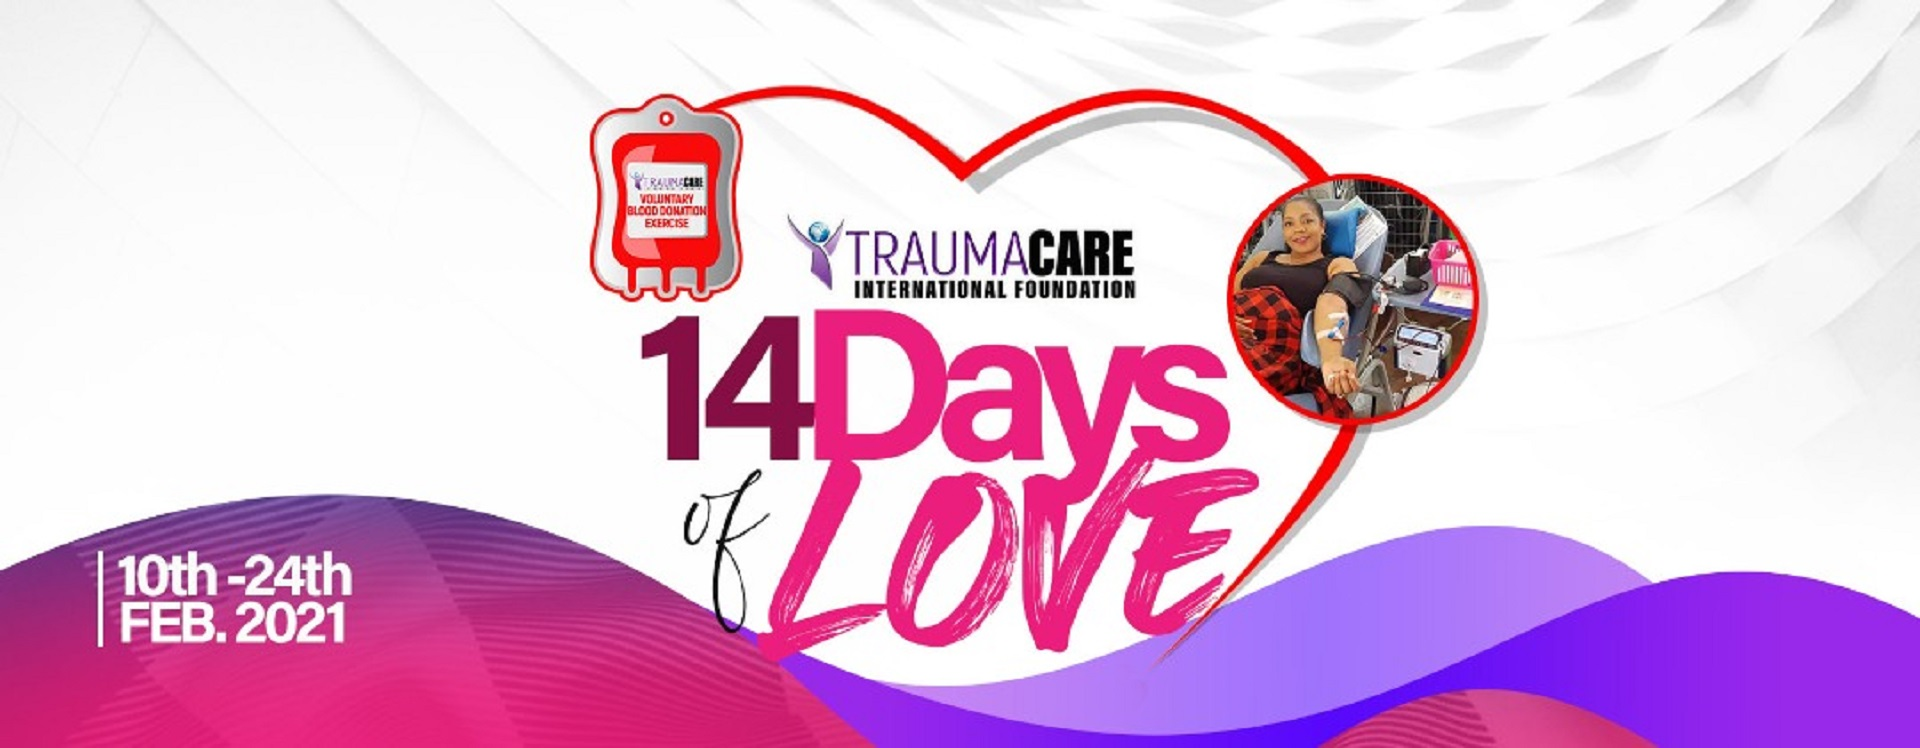 14 Days Blood Donation Campaign